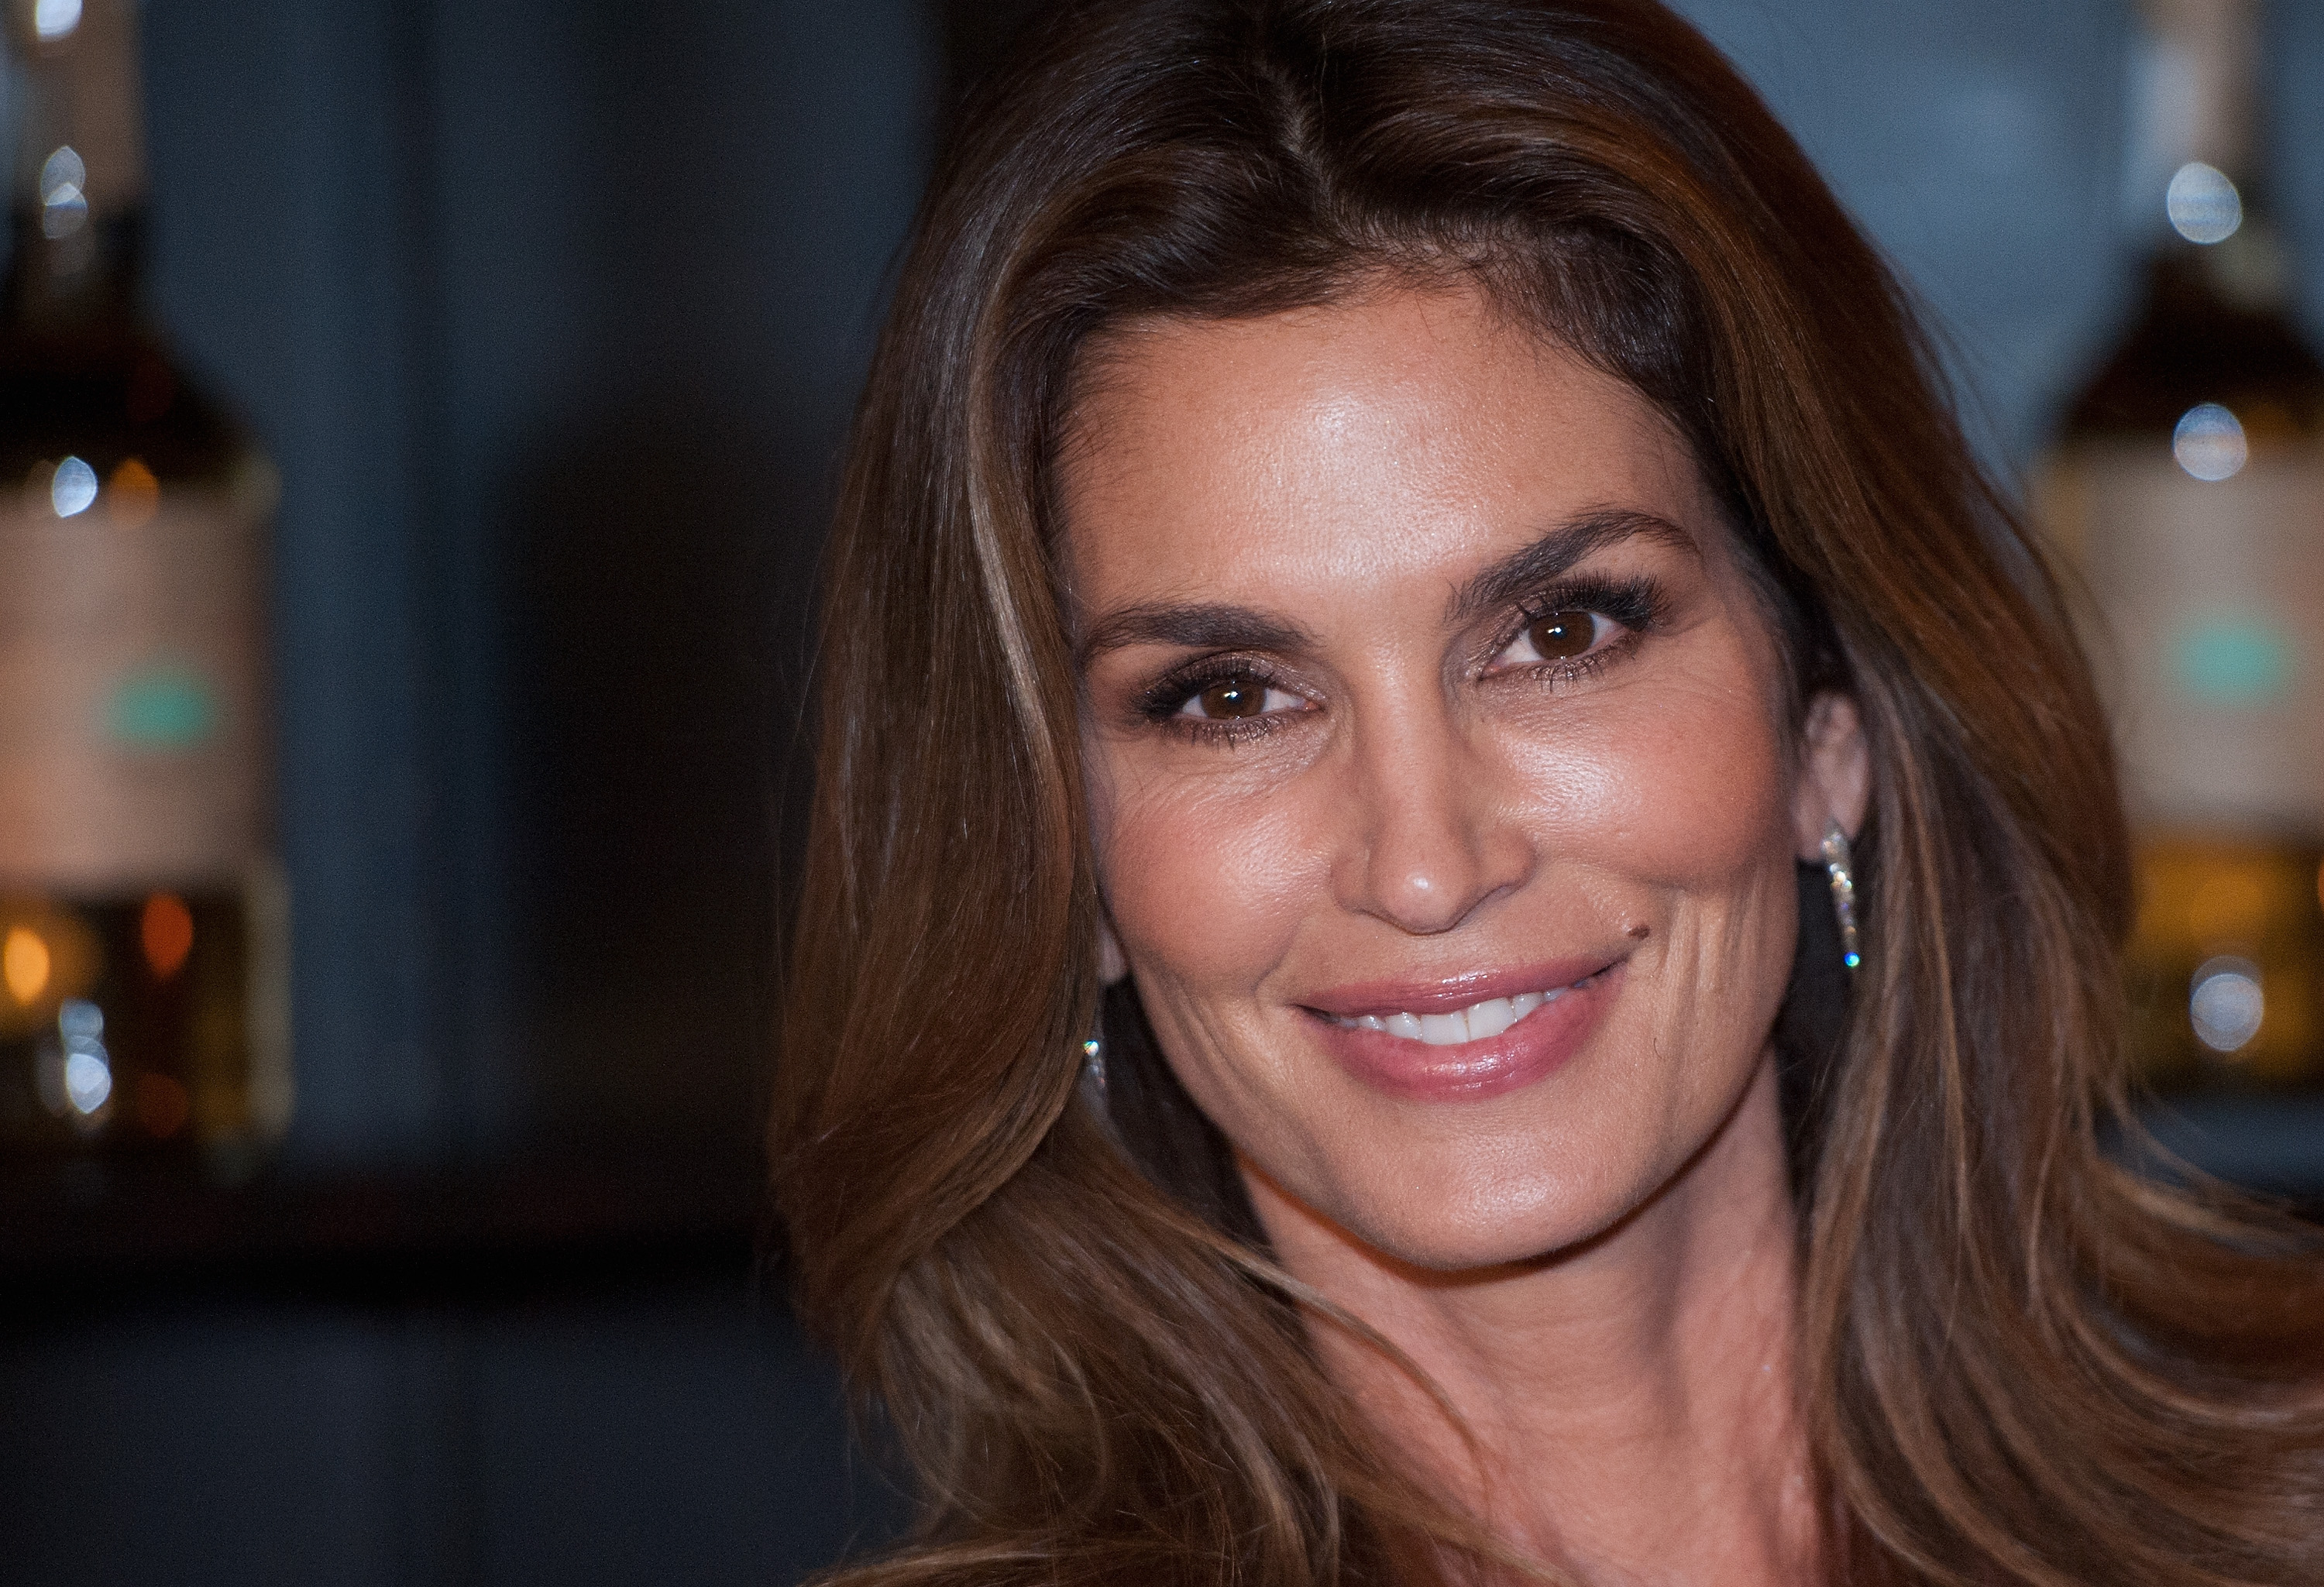 Selfie Cindy Crawford naked (52 photos), Tits, Is a cute, Boobs, lingerie 2020